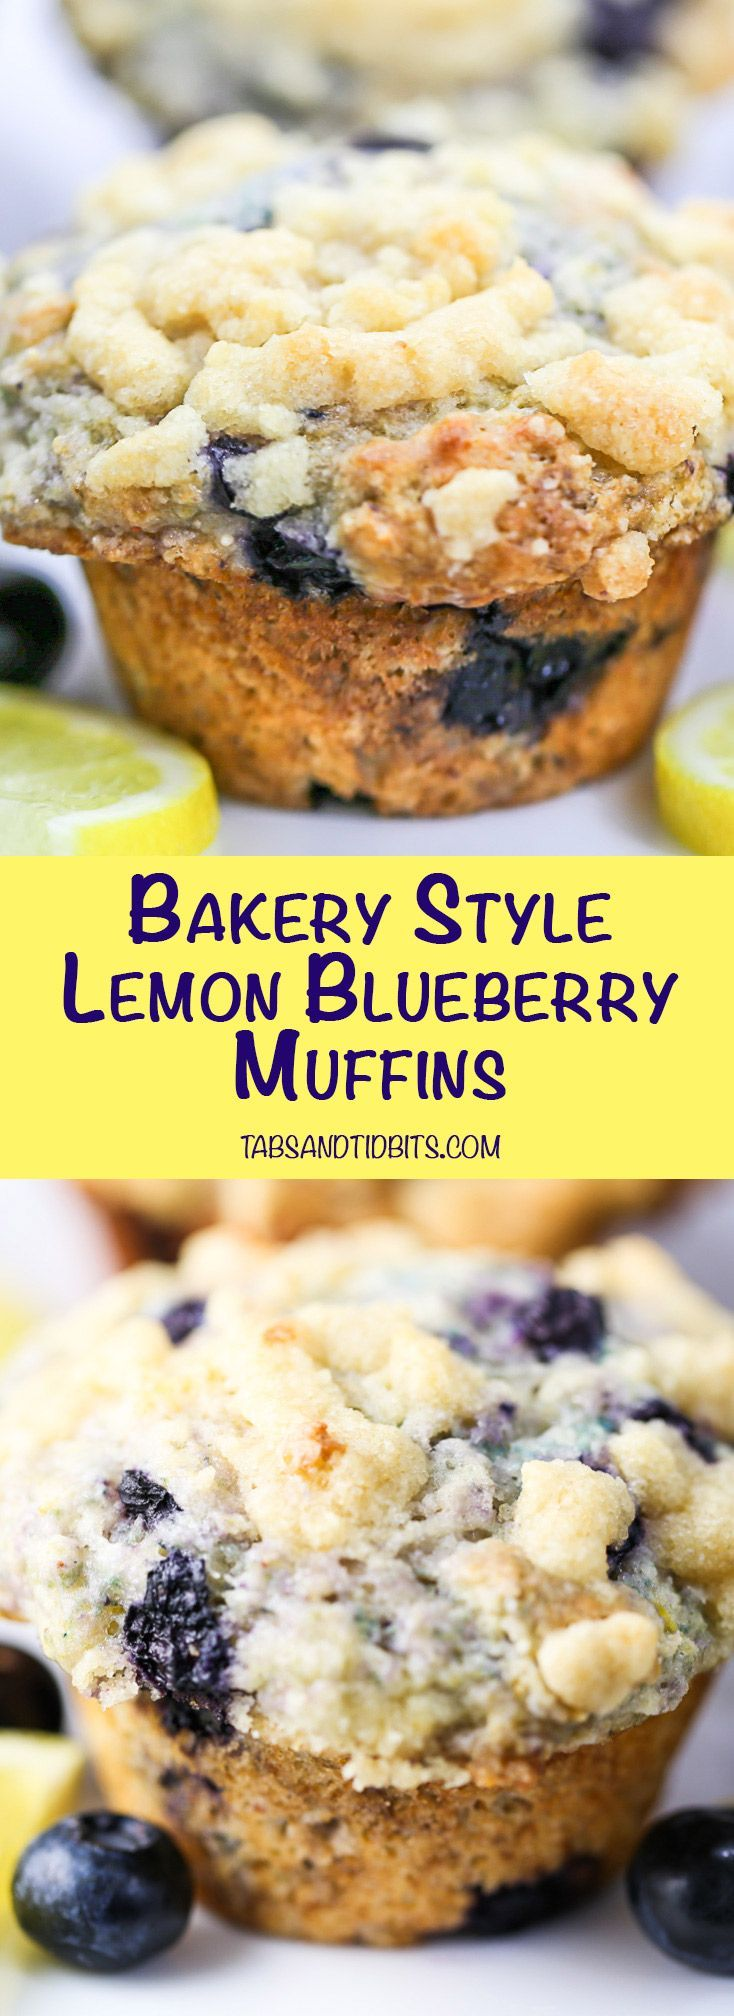 Tender bakery style muffins filled with blueberries and lemon zest and topped with a sweet and buttery streusel topping.